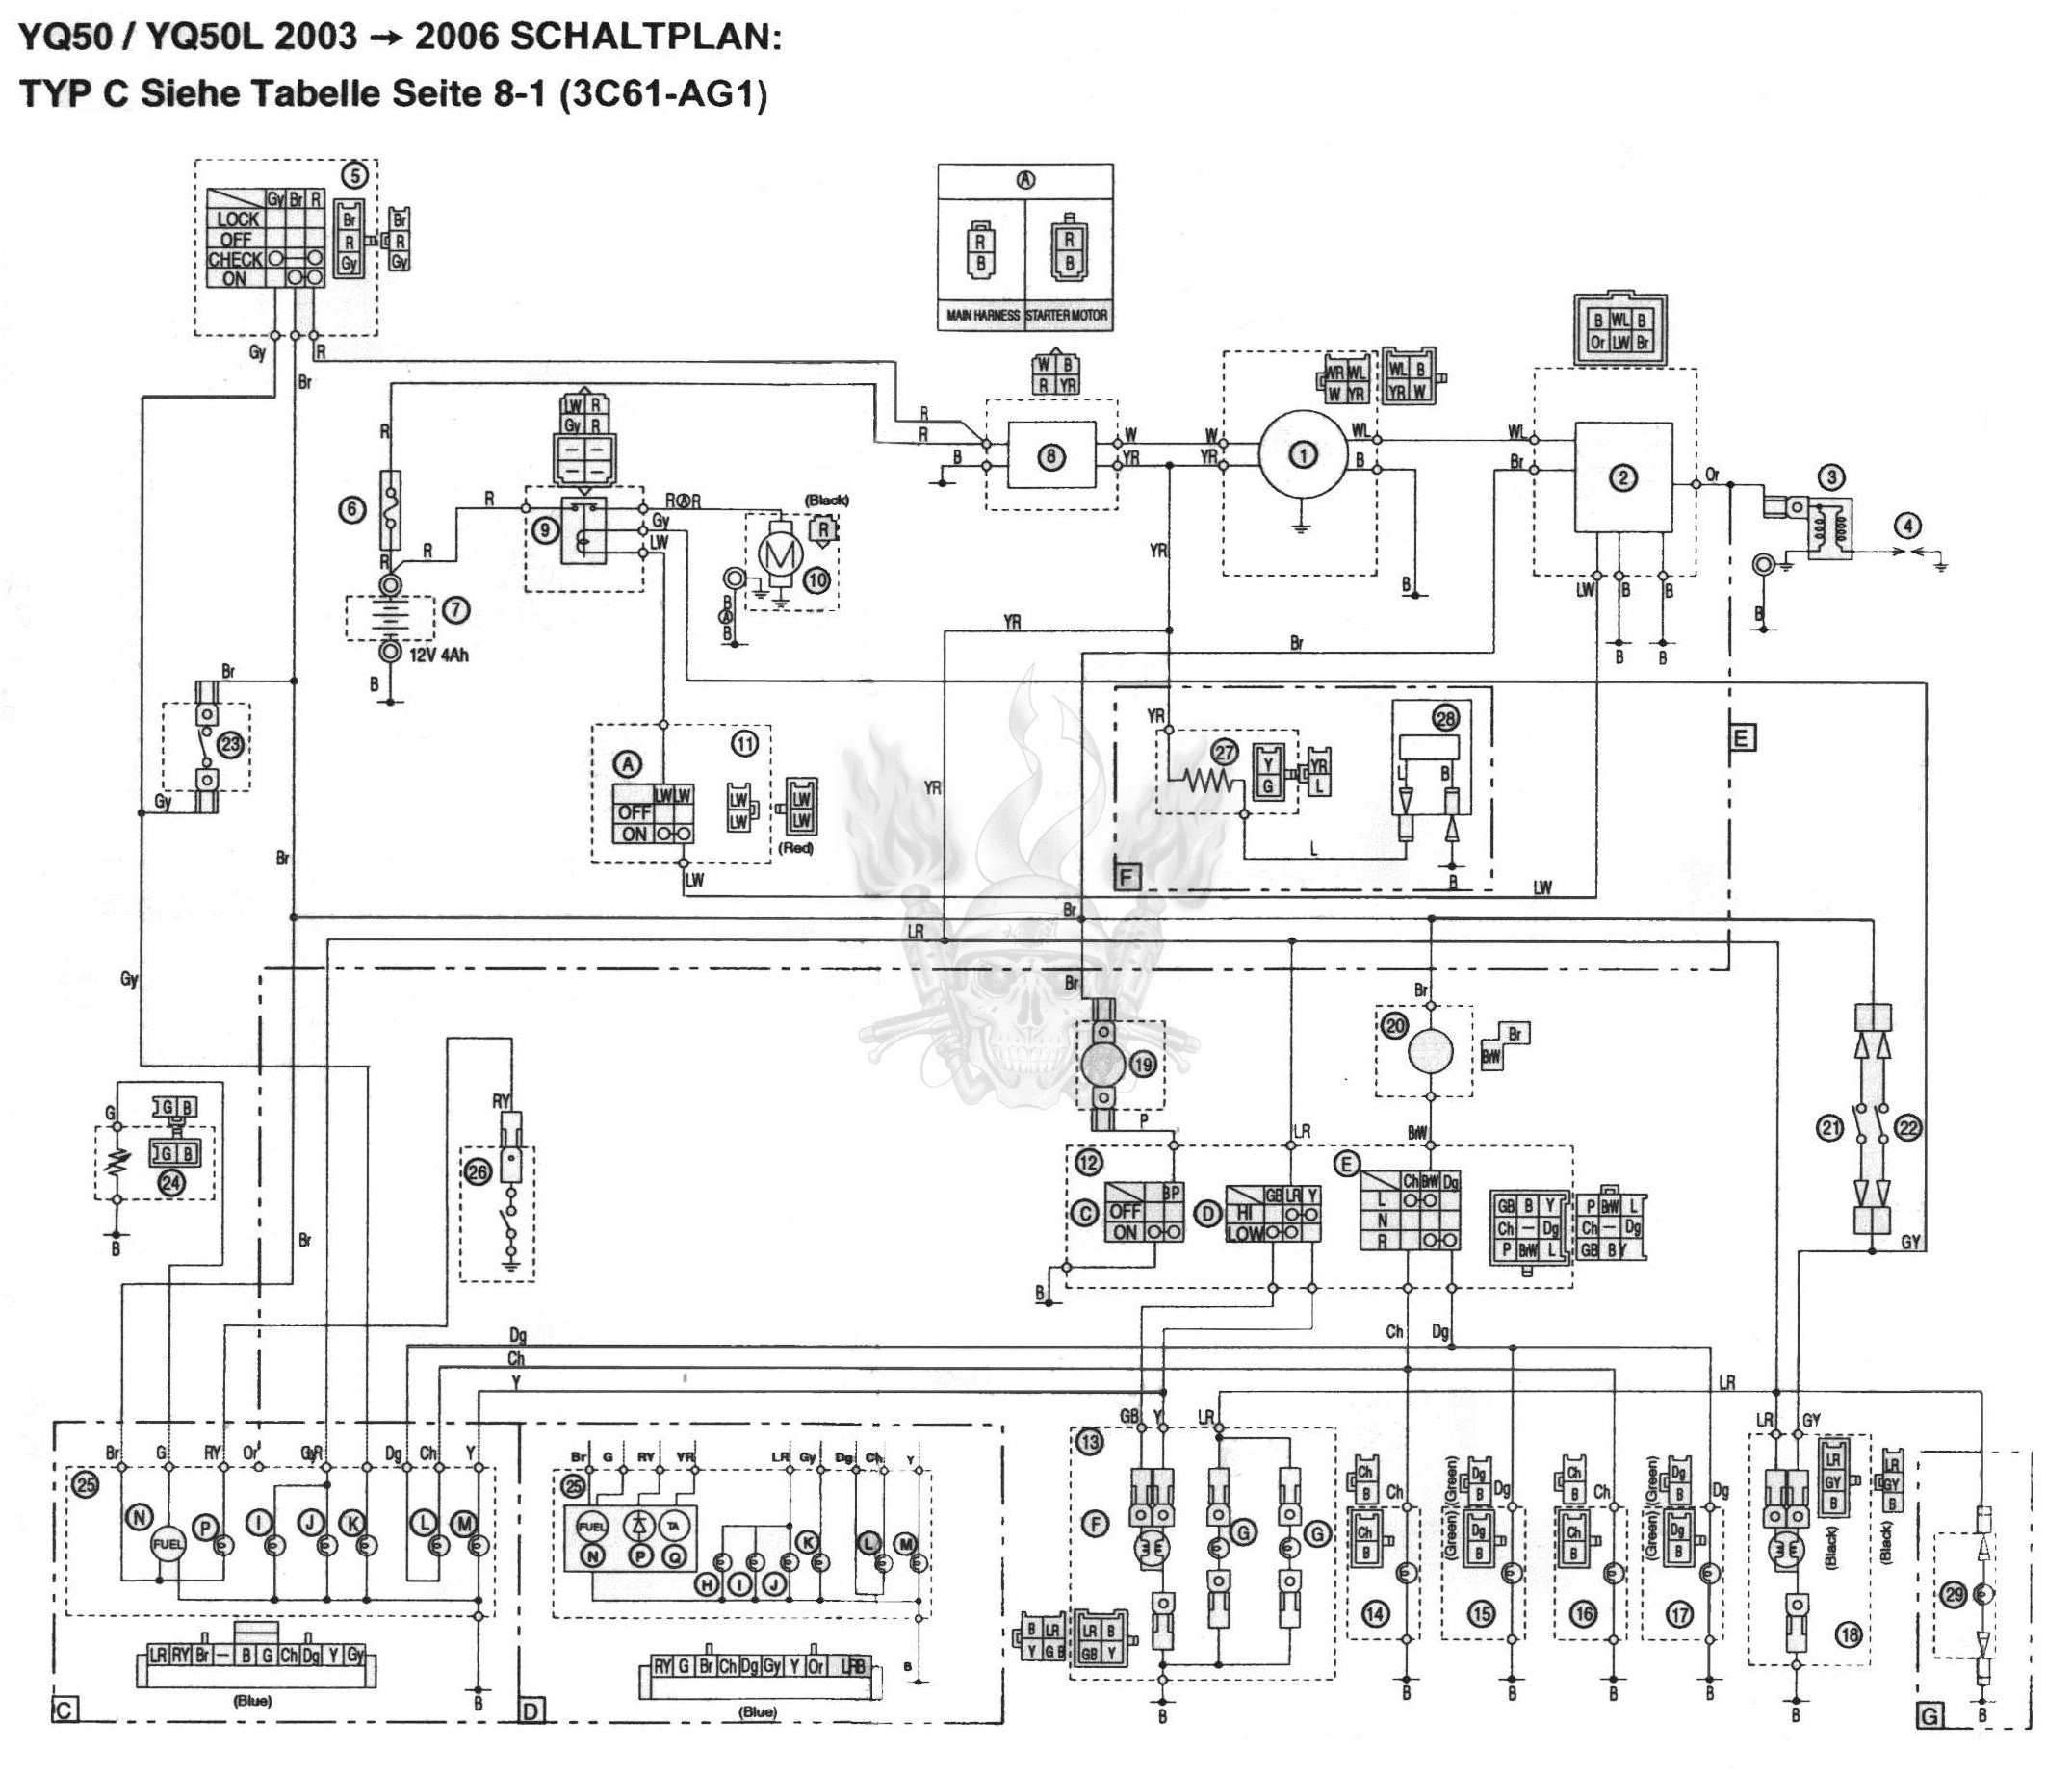 Big Bear 400 Wiring Diagram Library 2013 Polaris 200 Phoenix Further As Well Also Besides Likewise Furthermore Yamaha Xt600z 83 85